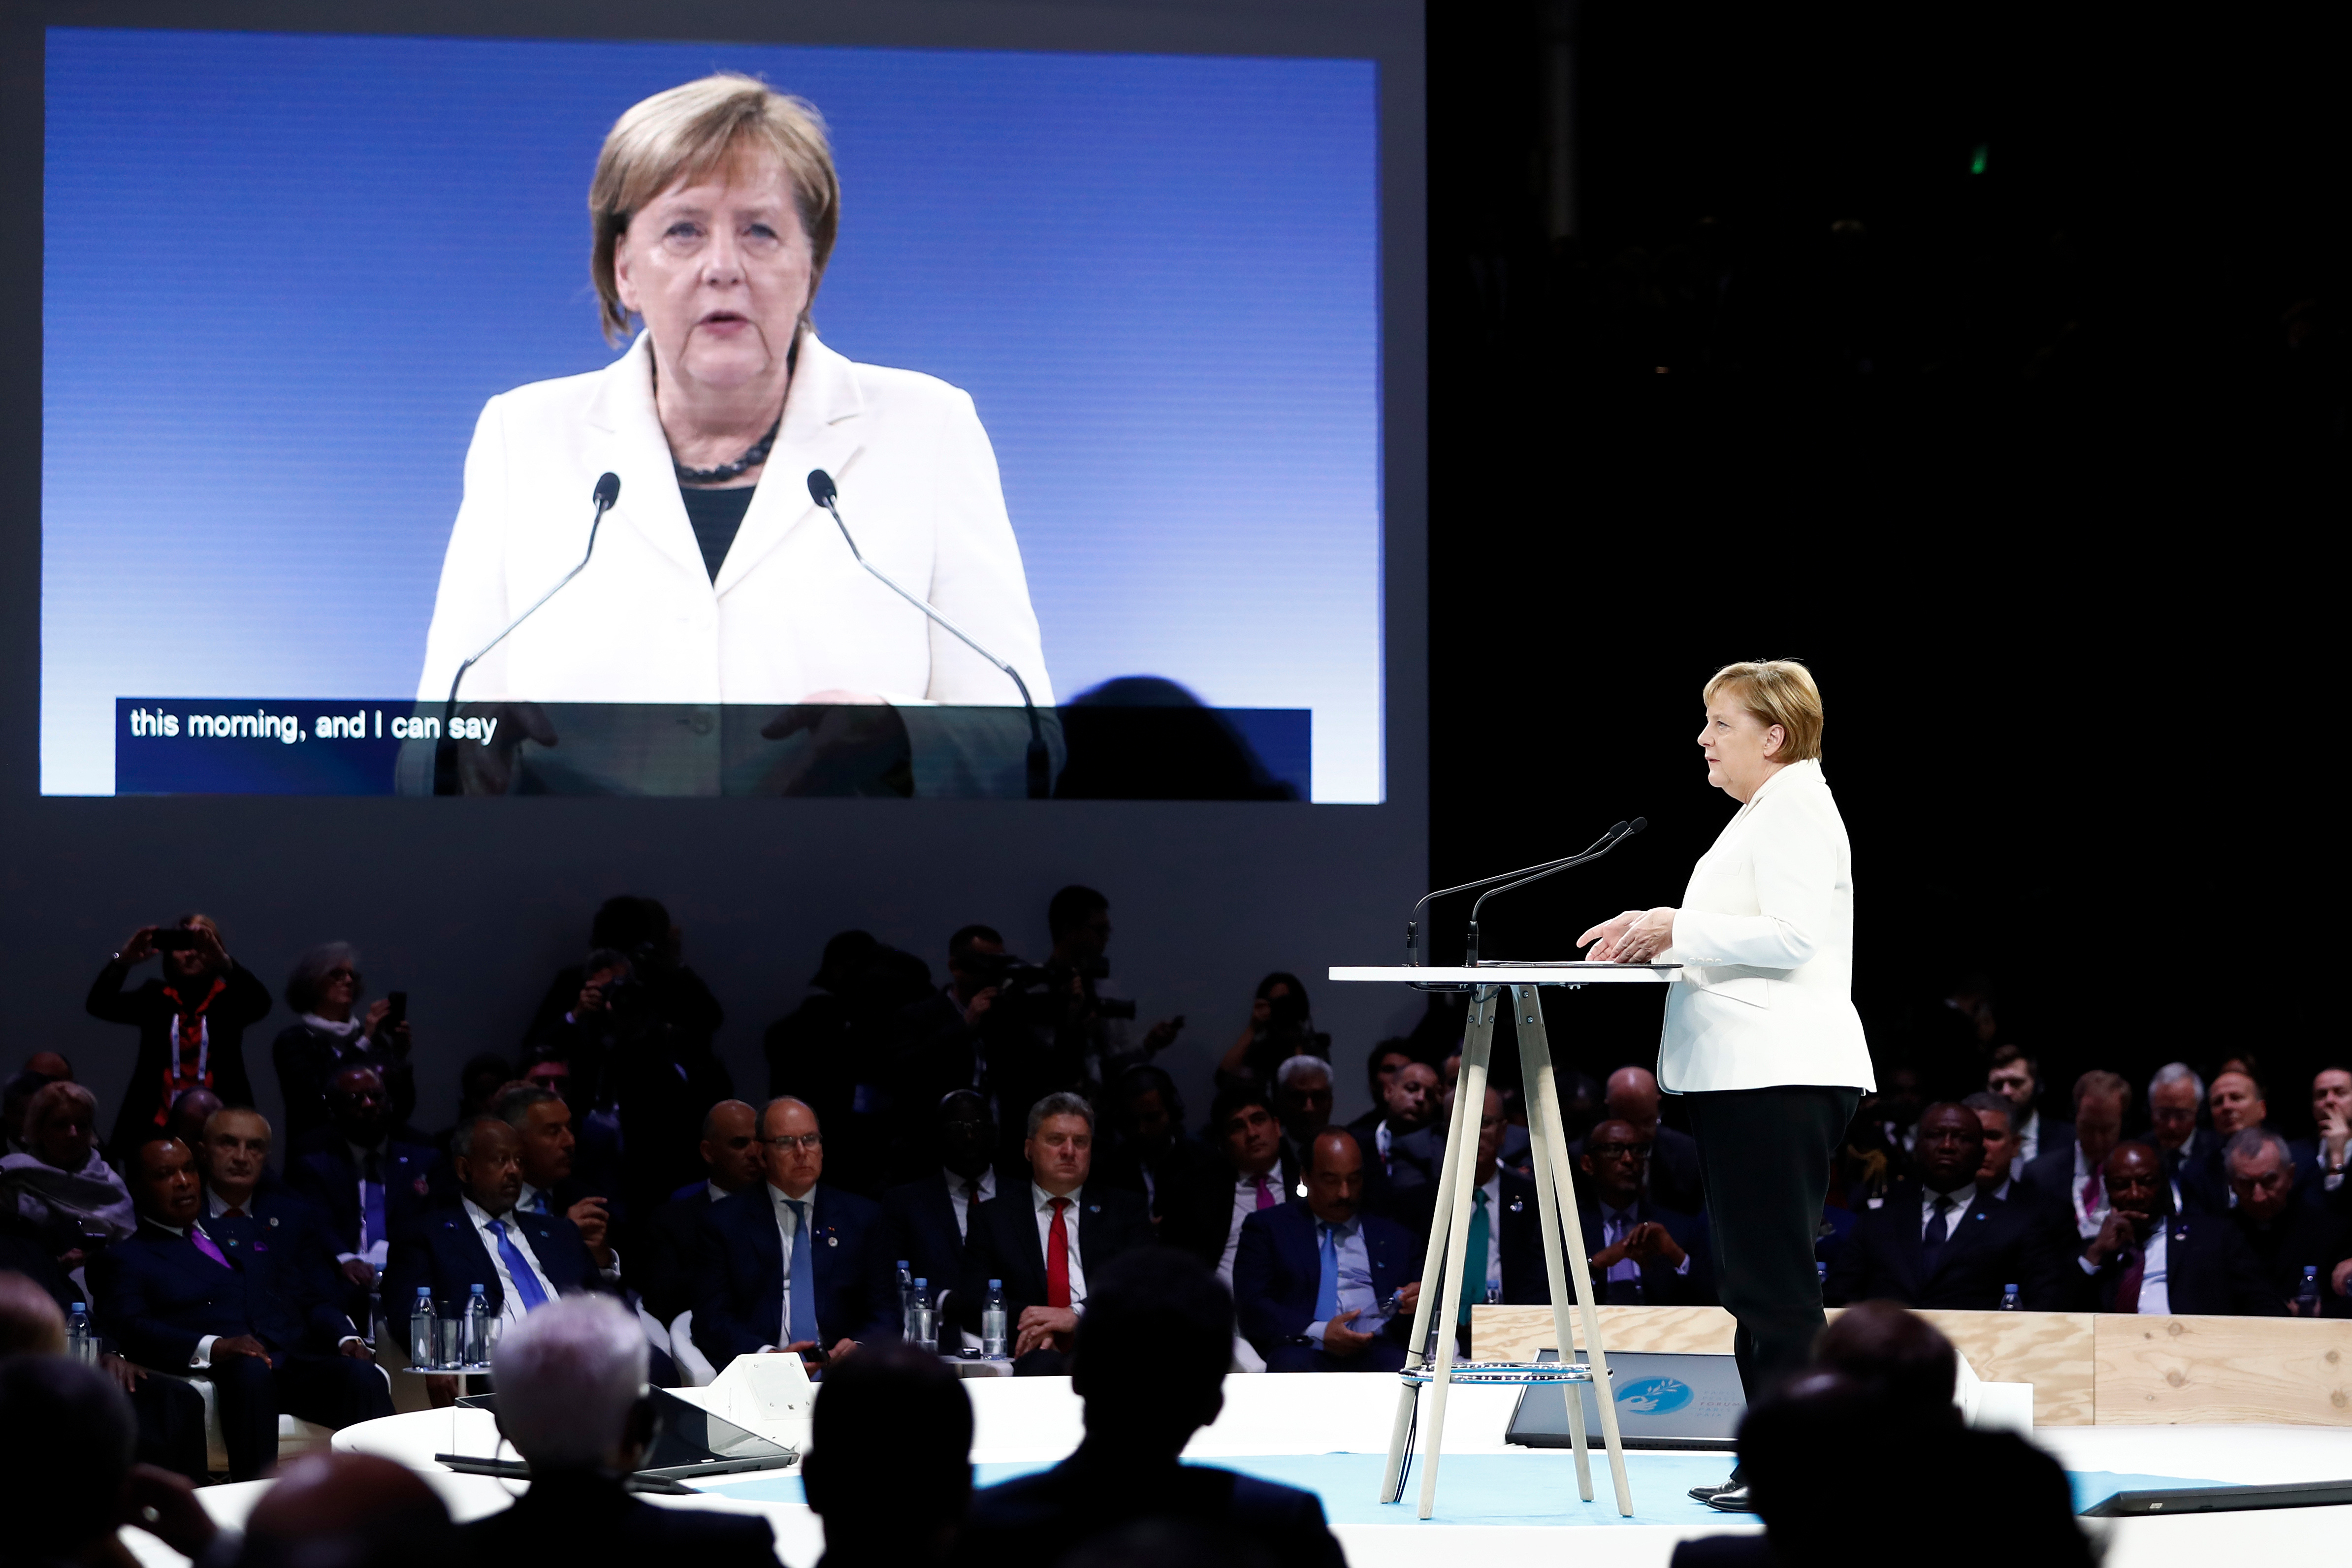 German Chancellor Angela Merkel speaks during the opening session of the Paris Peace Forum as part of the international commemoration ceremony for the Centenary of the WWI Armistice on Nov. 11, 2018.